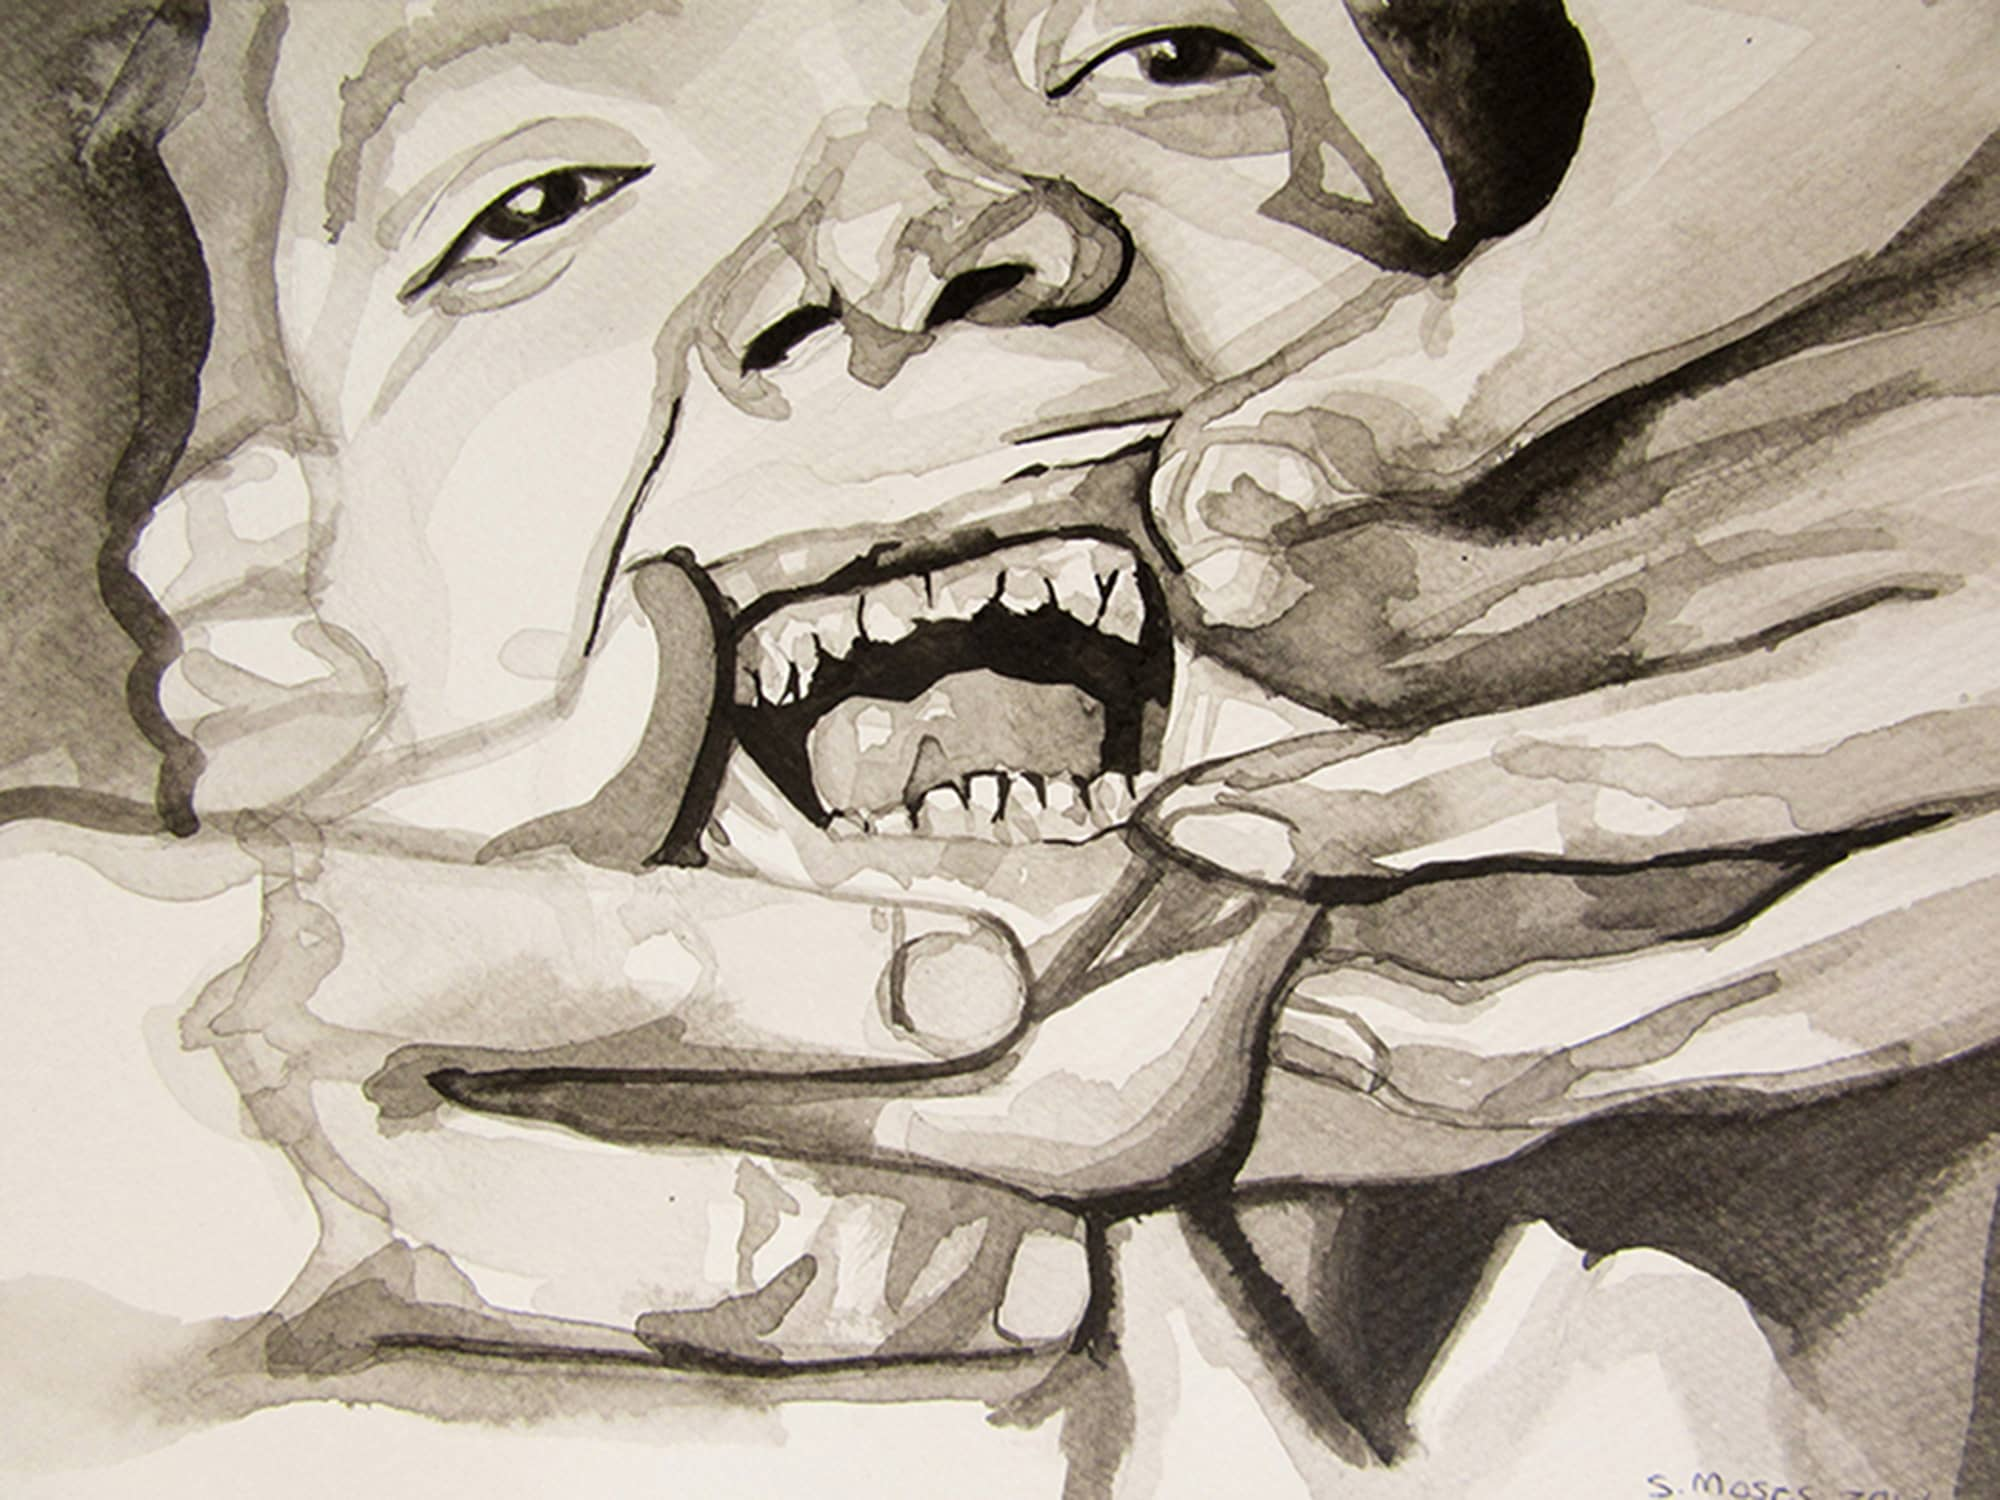 <span class=&#34;link fancybox-details-link&#34;><a href=&#34;/artists/49-sharon-moses/works/2494-sharon-moses-drooling-2018/&#34;>View Detail Page</a></span><div class=&#34;artist&#34;><strong>Sharon Moses</strong></div> <div class=&#34;title&#34;><em>Drooling</em>, 2018</div> <div class=&#34;medium&#34;>Ink On 300Gsm Cold Pressed Acid-Free Paper</div> <div class=&#34;dimensions&#34;>14.8cm x 21cm</div><div class=&#34;price&#34;>R500.00</div>